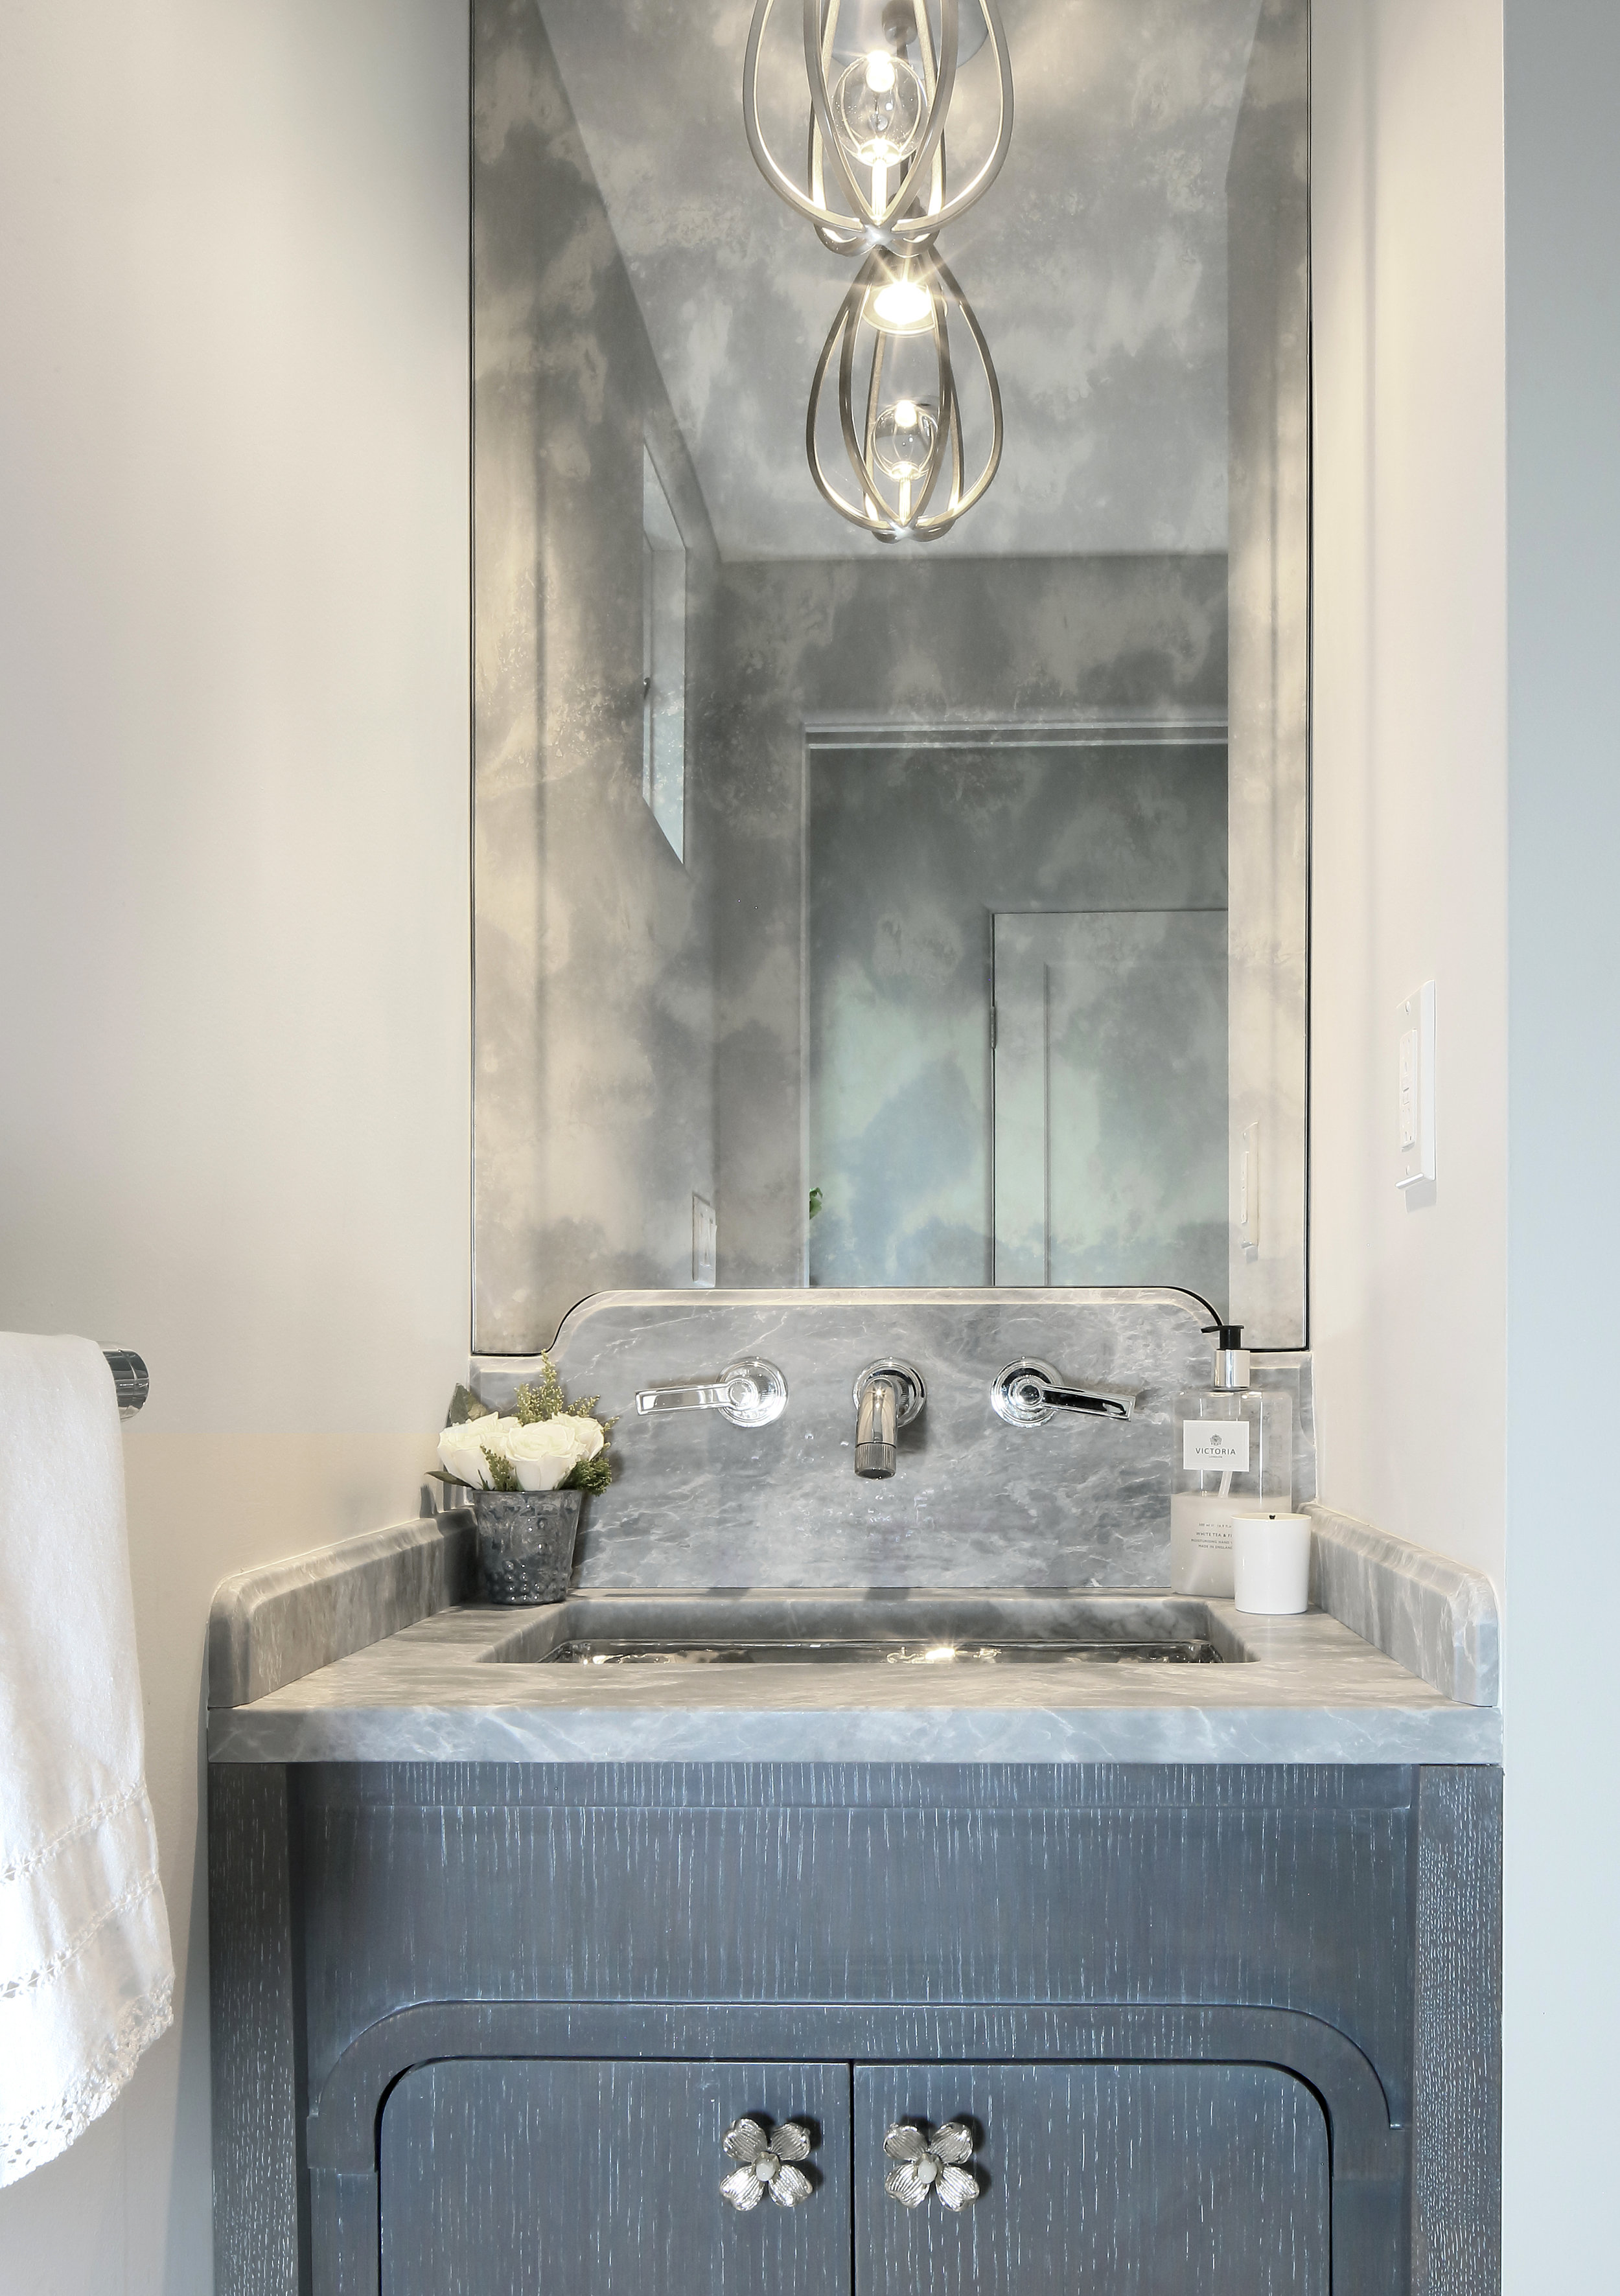 KAM DESIGN_Powder Room_Larchmont_2018_573a.jpg